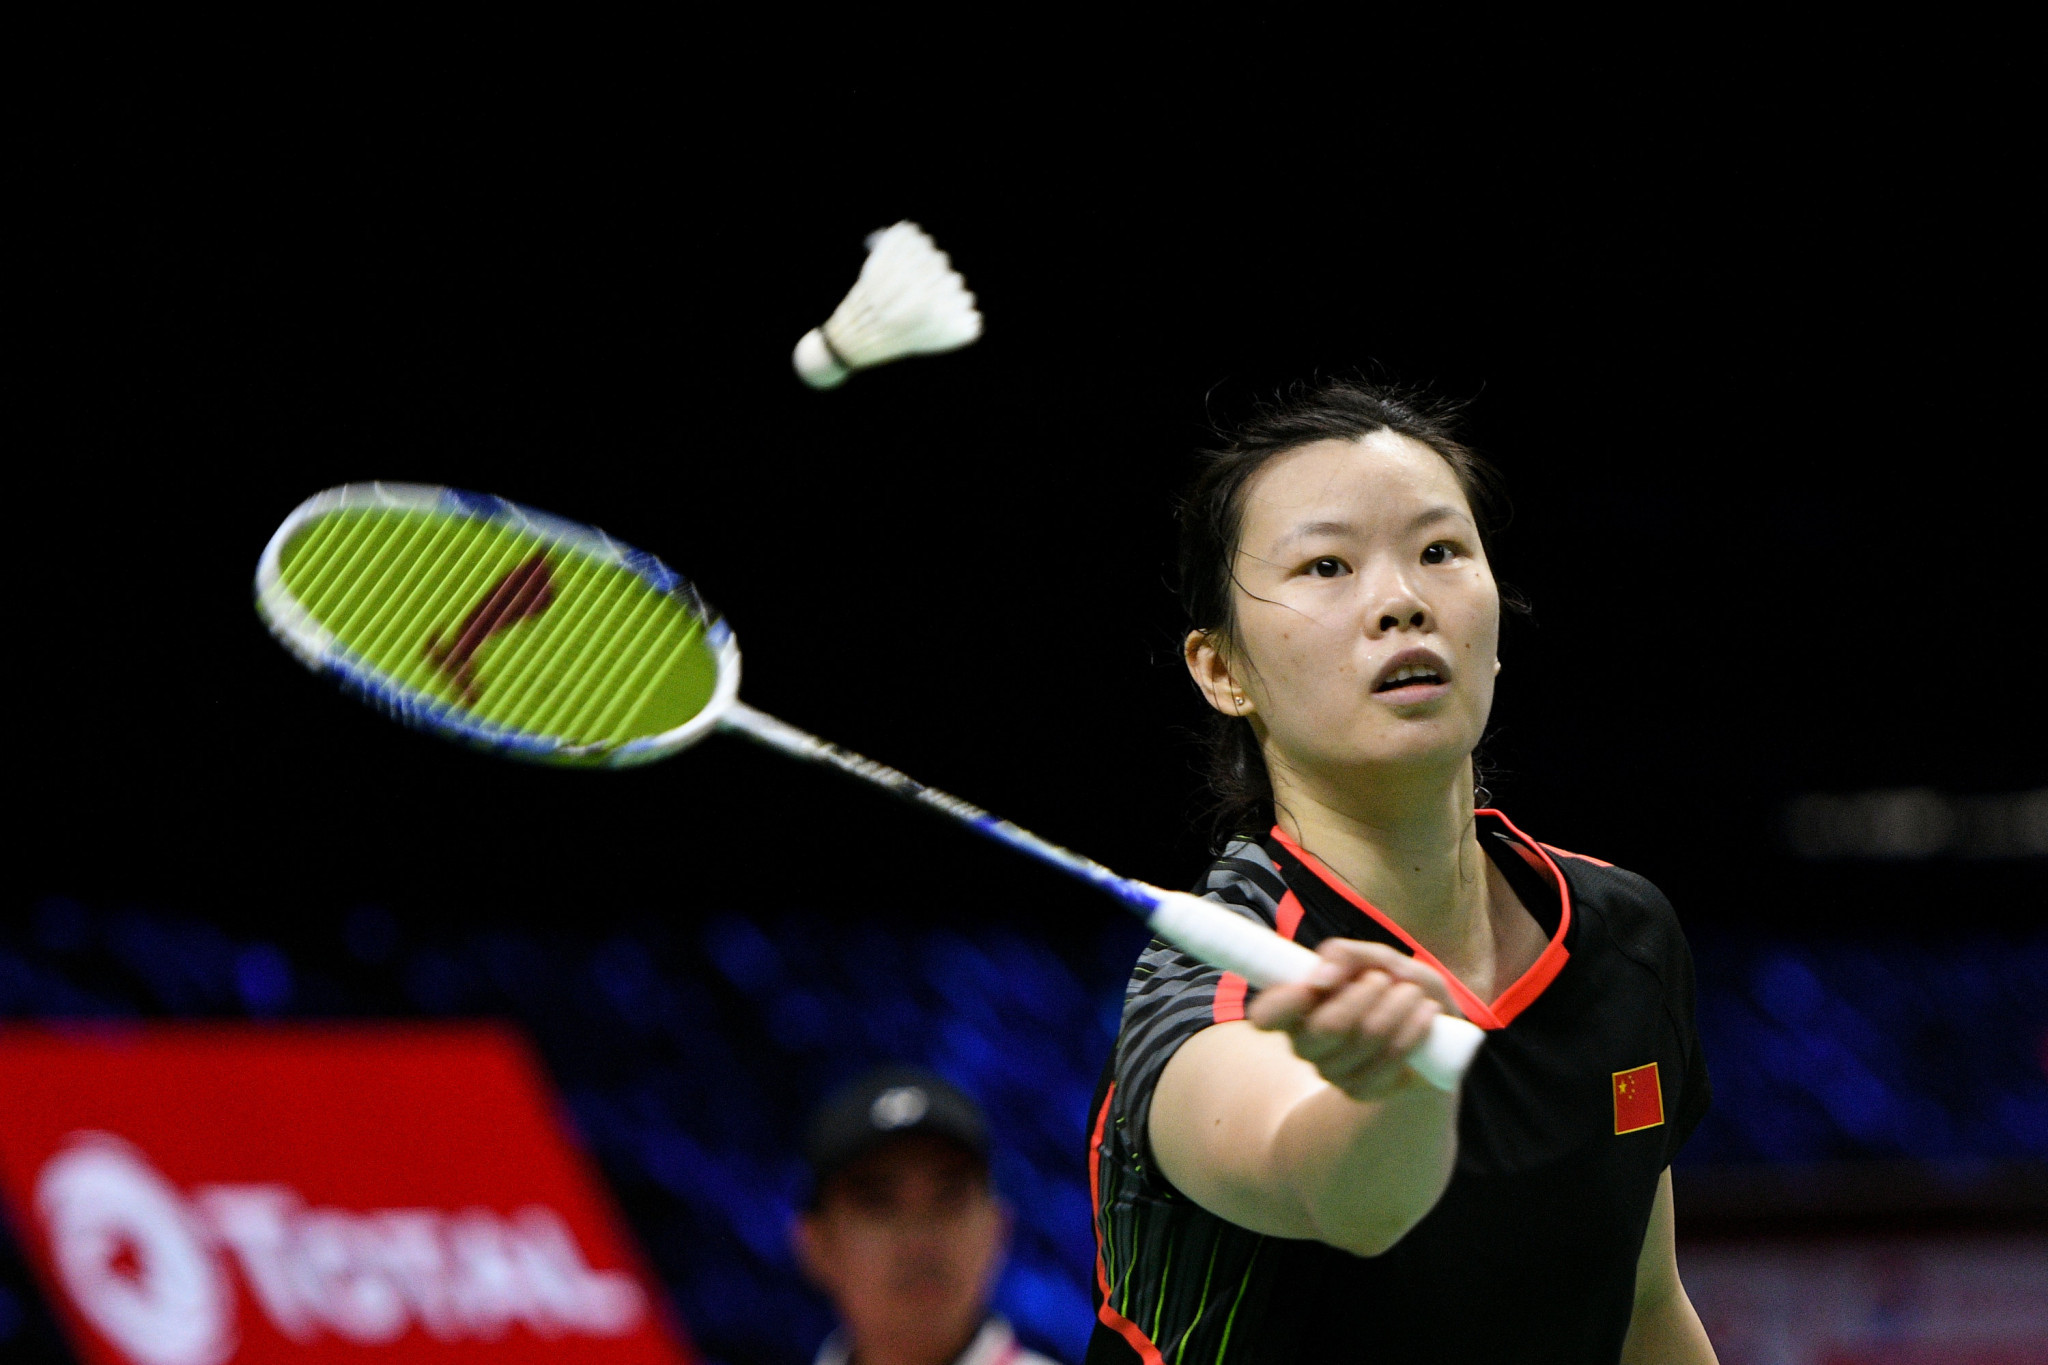 Li Xuerui continued her march in Canada ©Getty Images